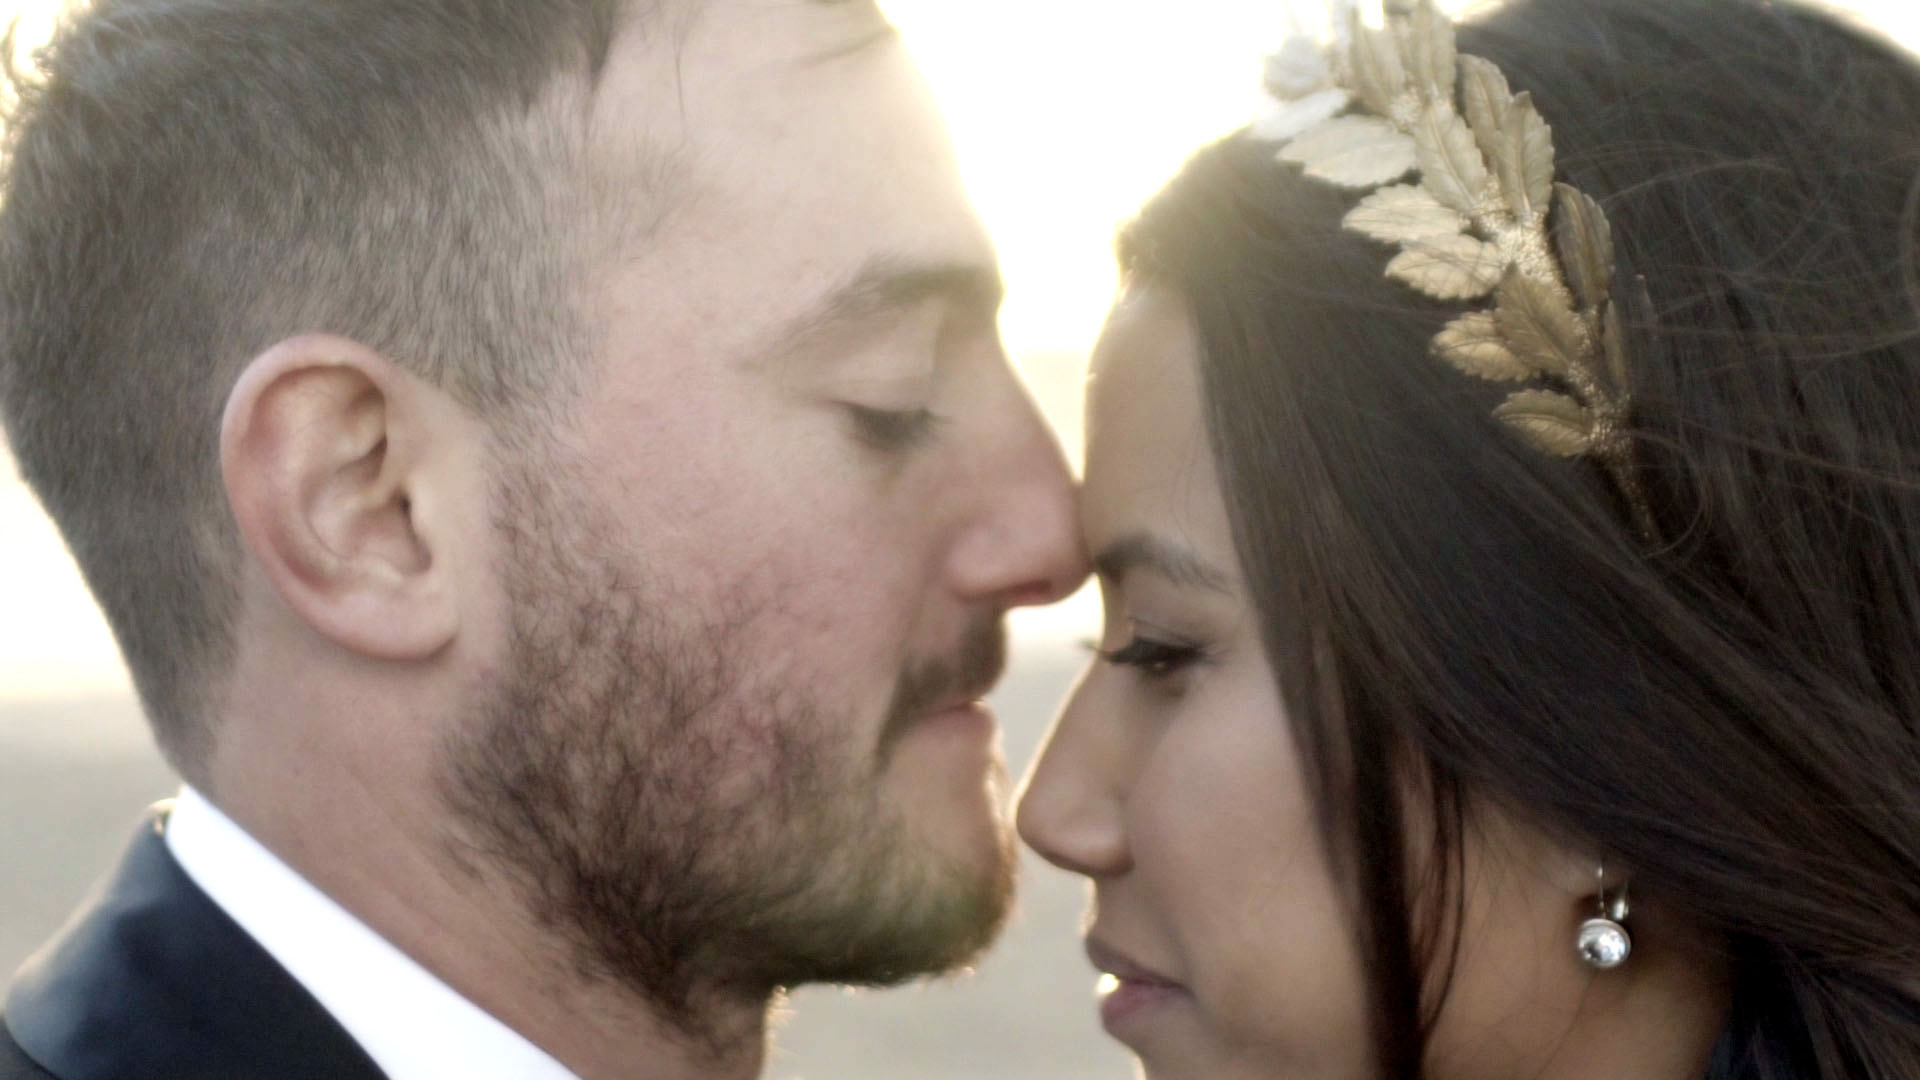 baz and pascale wedding videography melbourne